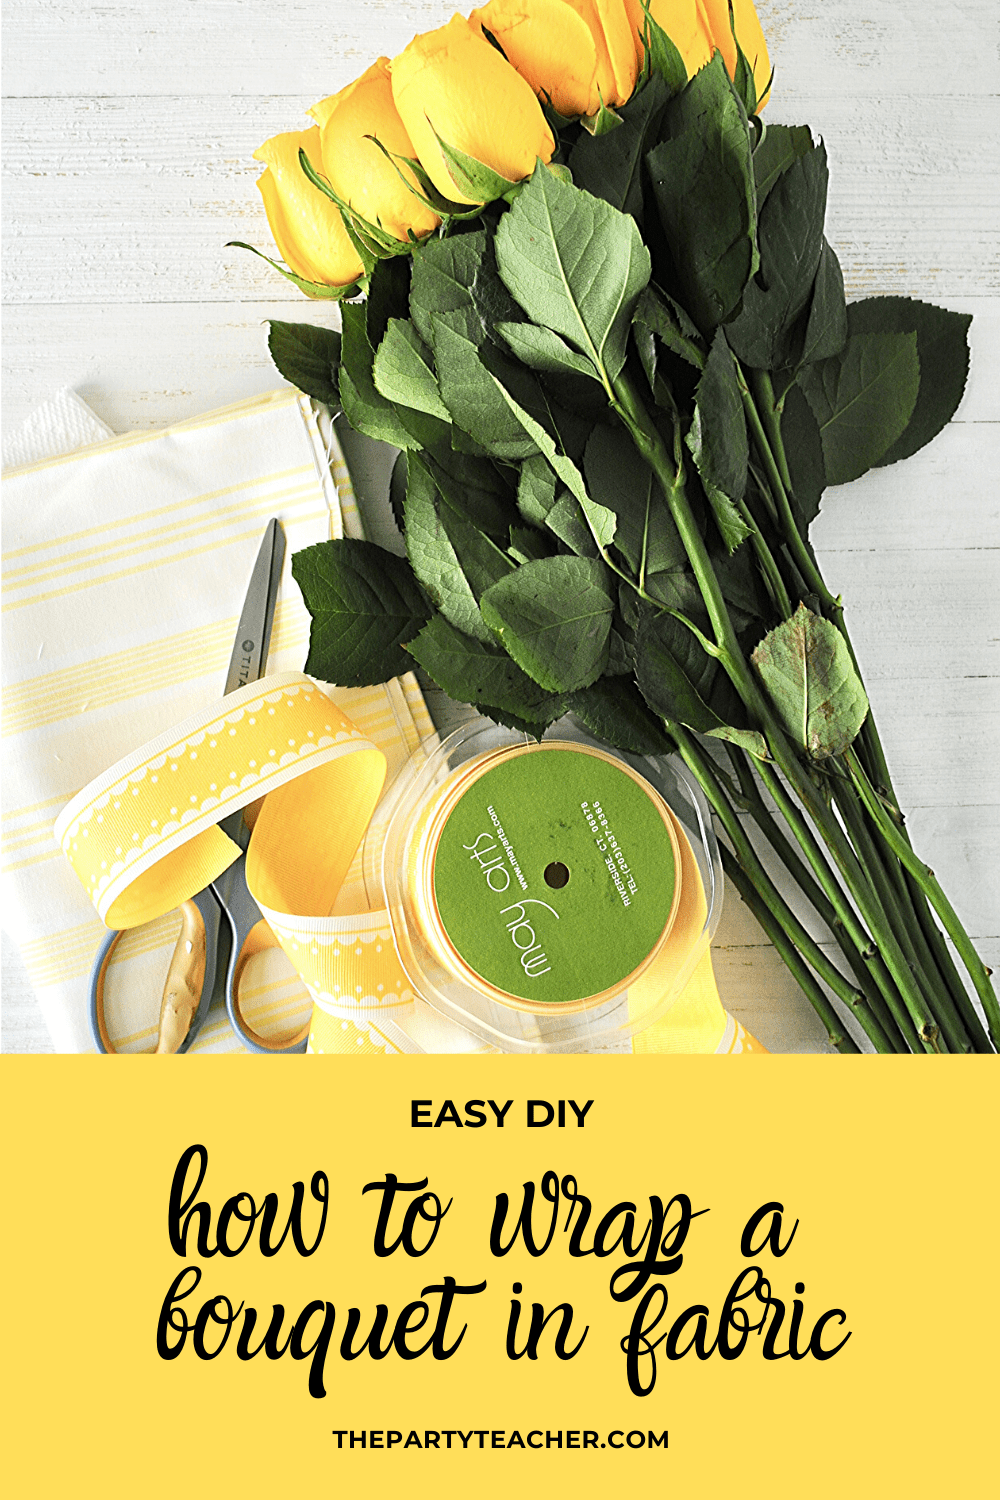 Wrap bouquet in fabric - The Party Teacher